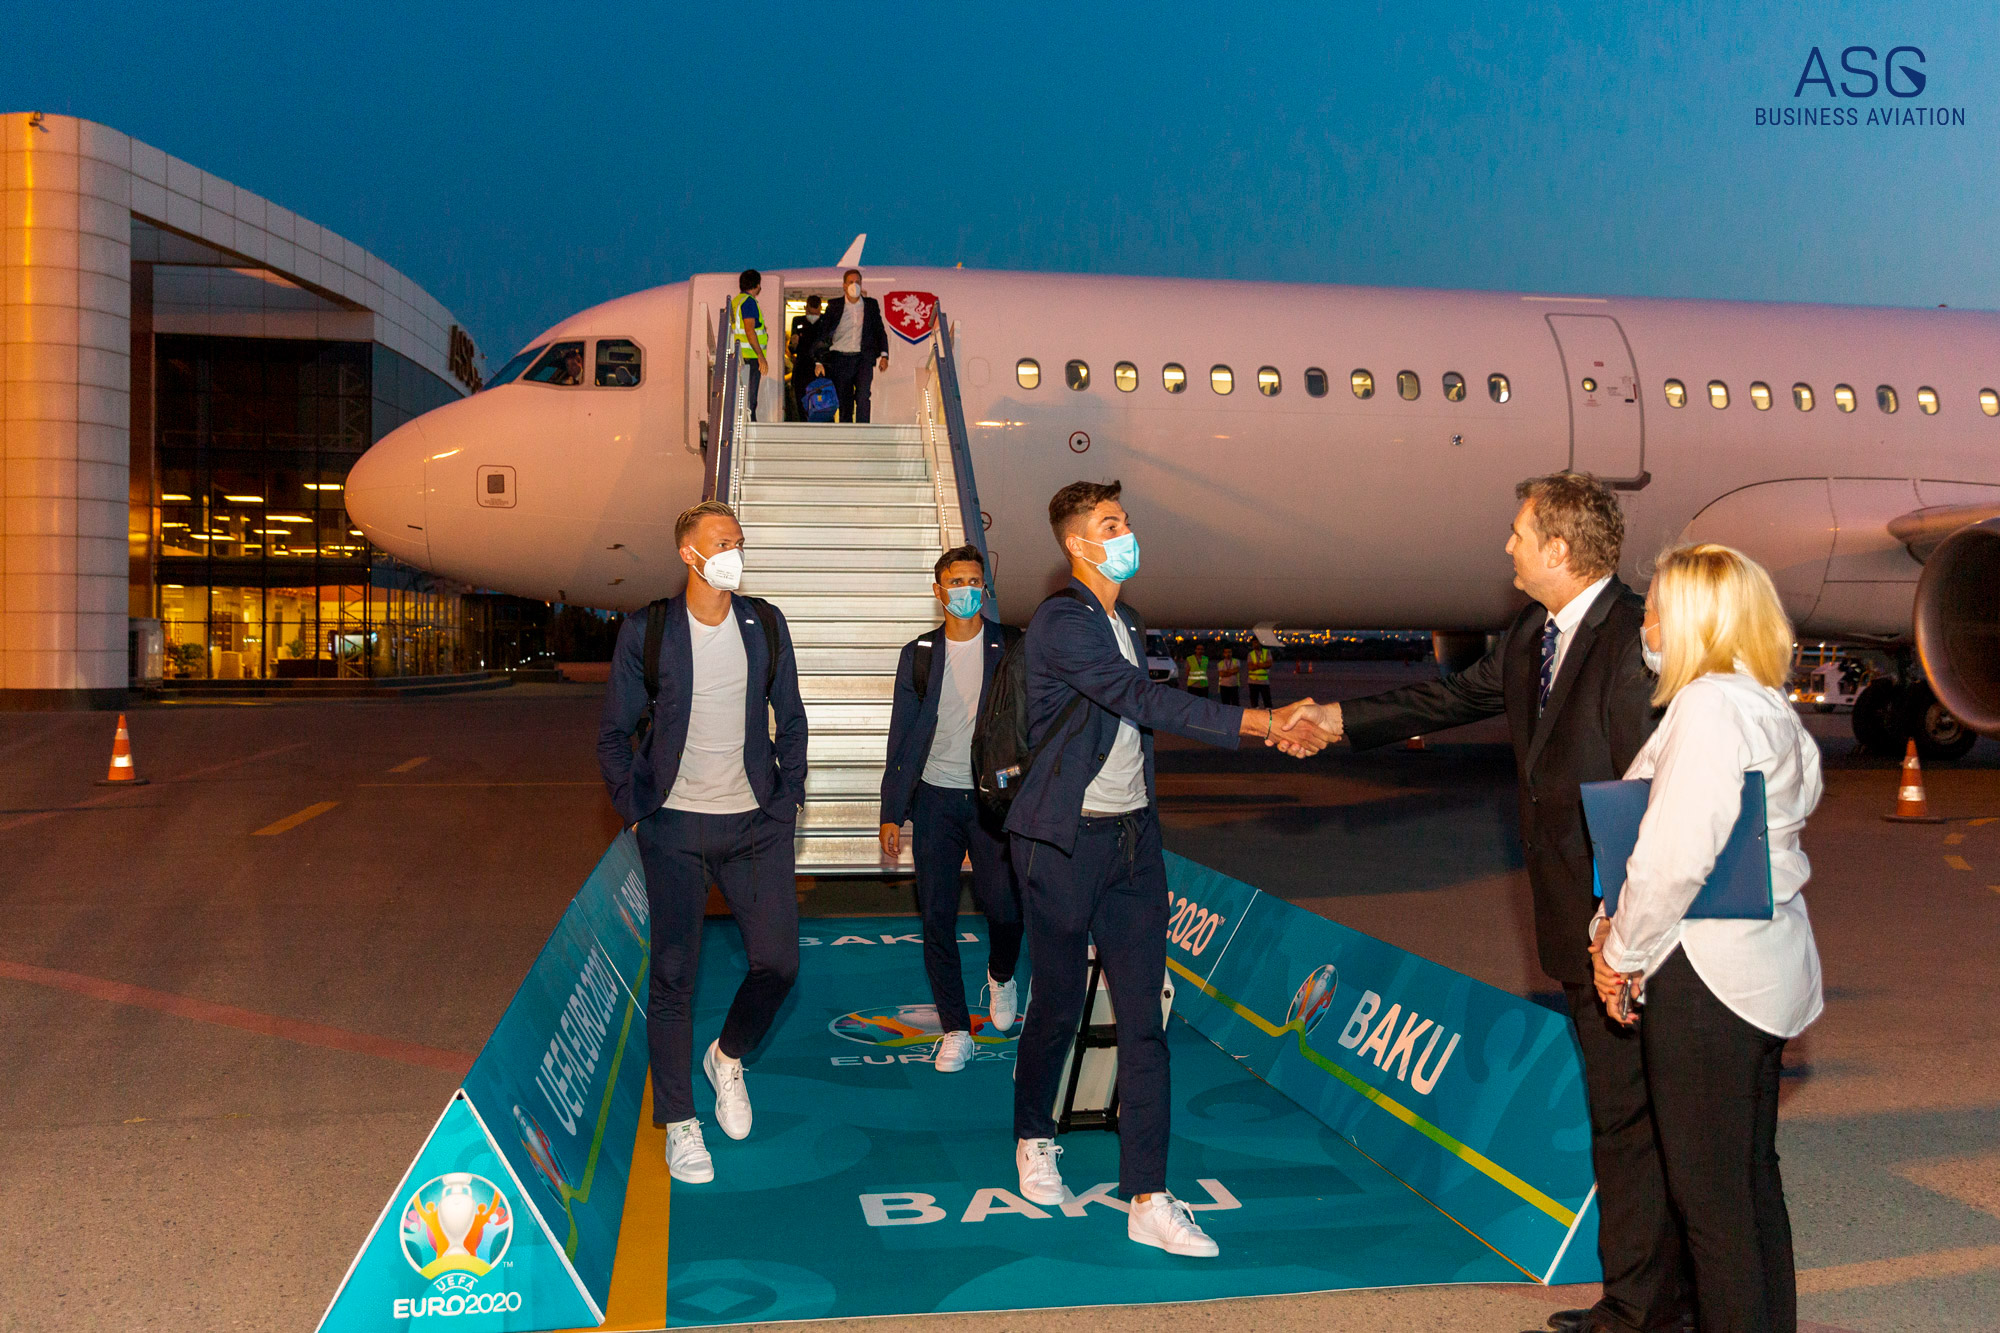 ASG Business Aviation hosted football players of the ¼ final of EURO 2020